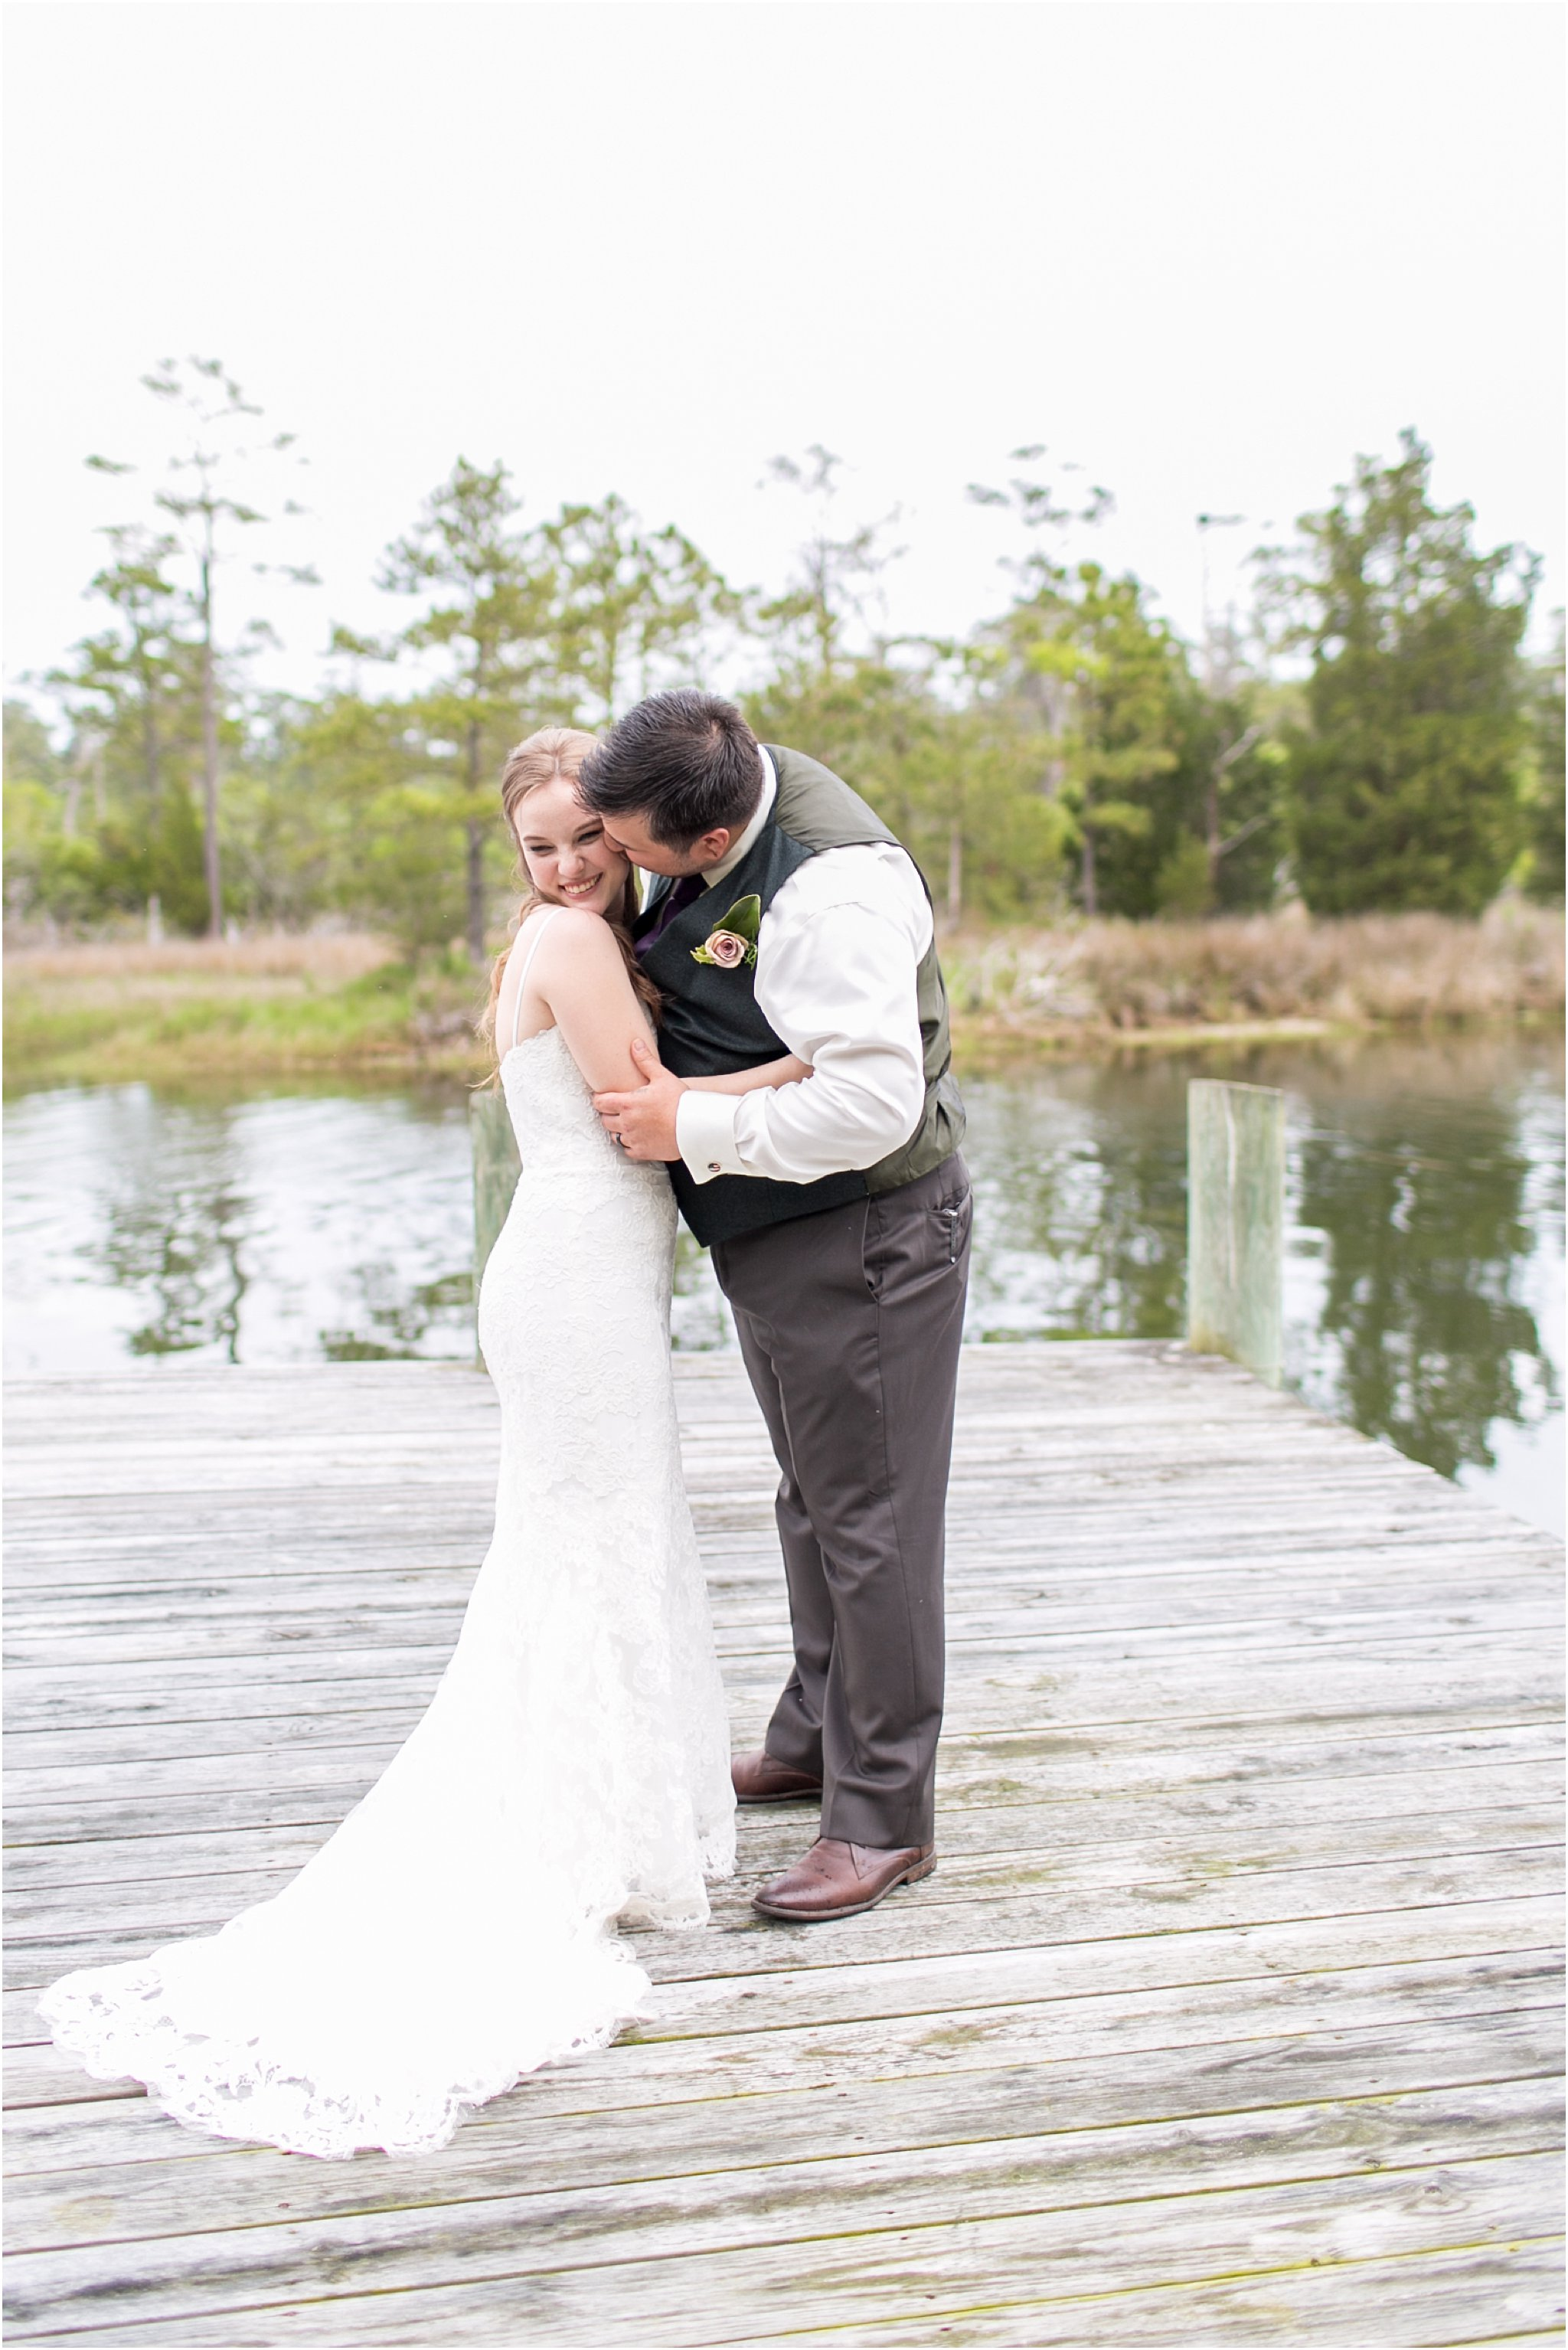 jessica_ryan_photography_virginia_virginiabeachwedding_bayislandvirginiabeach_backyardwedding_waterfrontwedding_intimatewedding_vintagewedding_1569